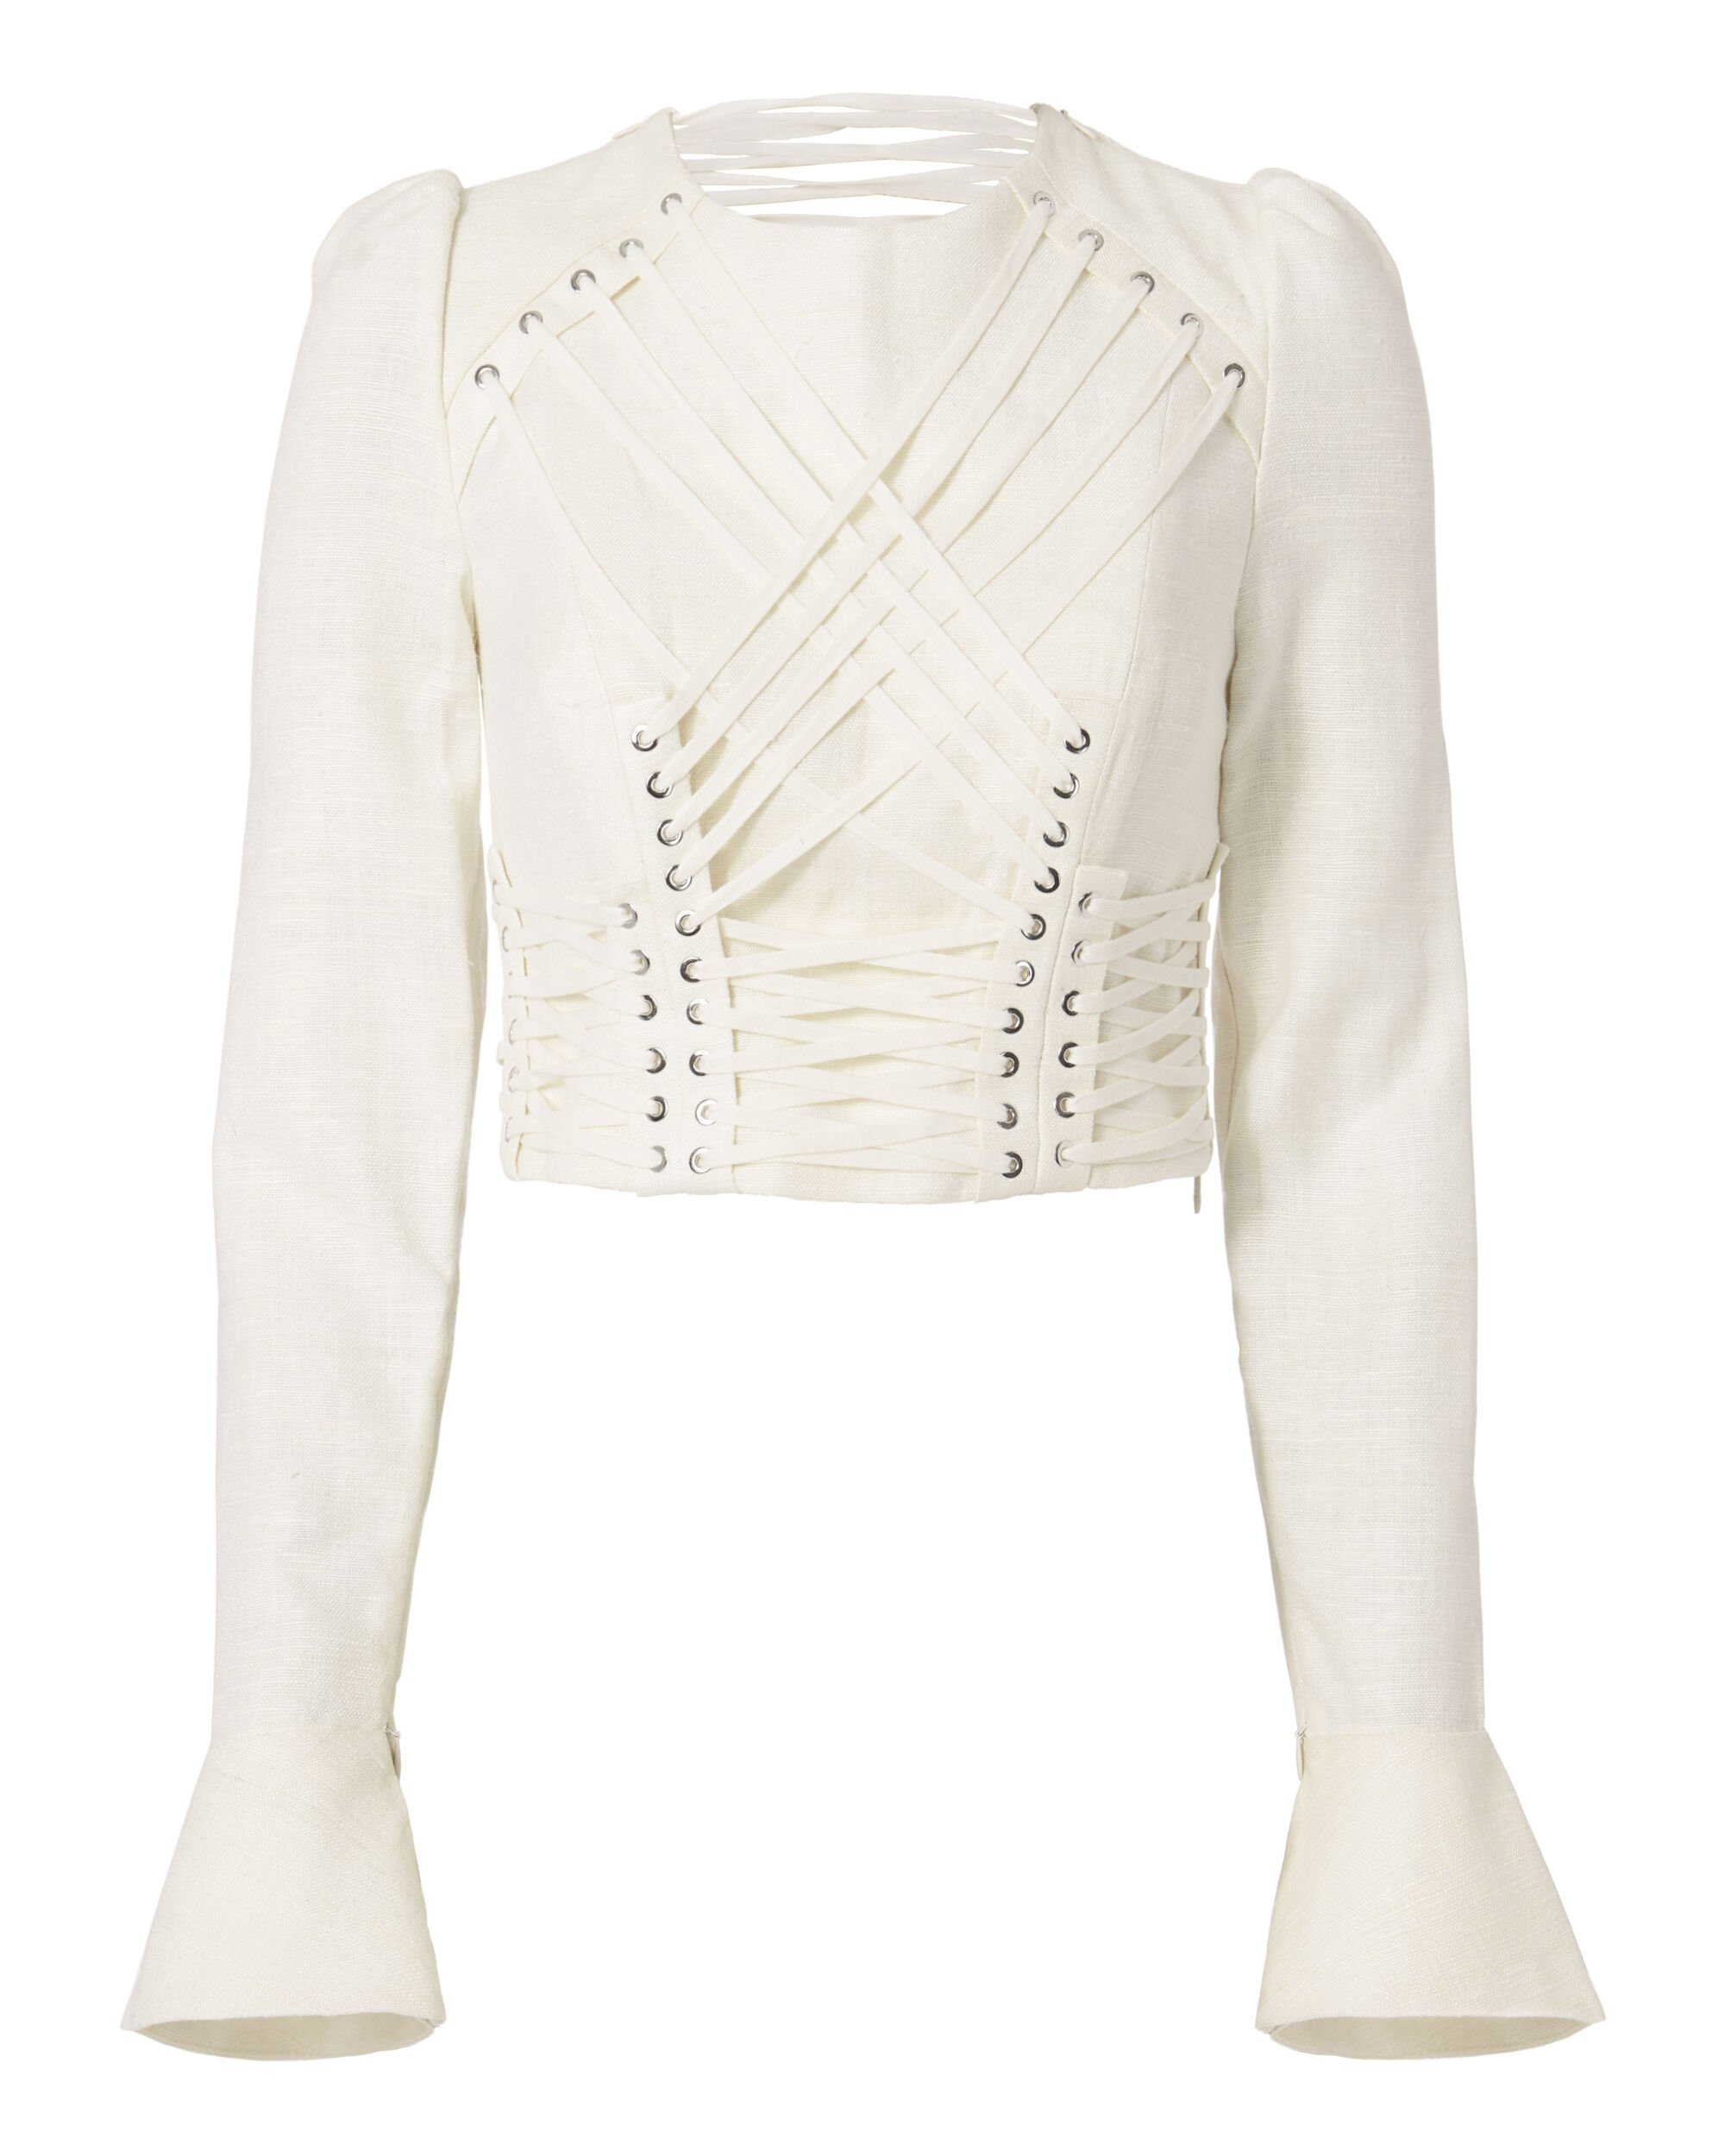 Lace-Up Cavalier Top, IVORY, hi-res